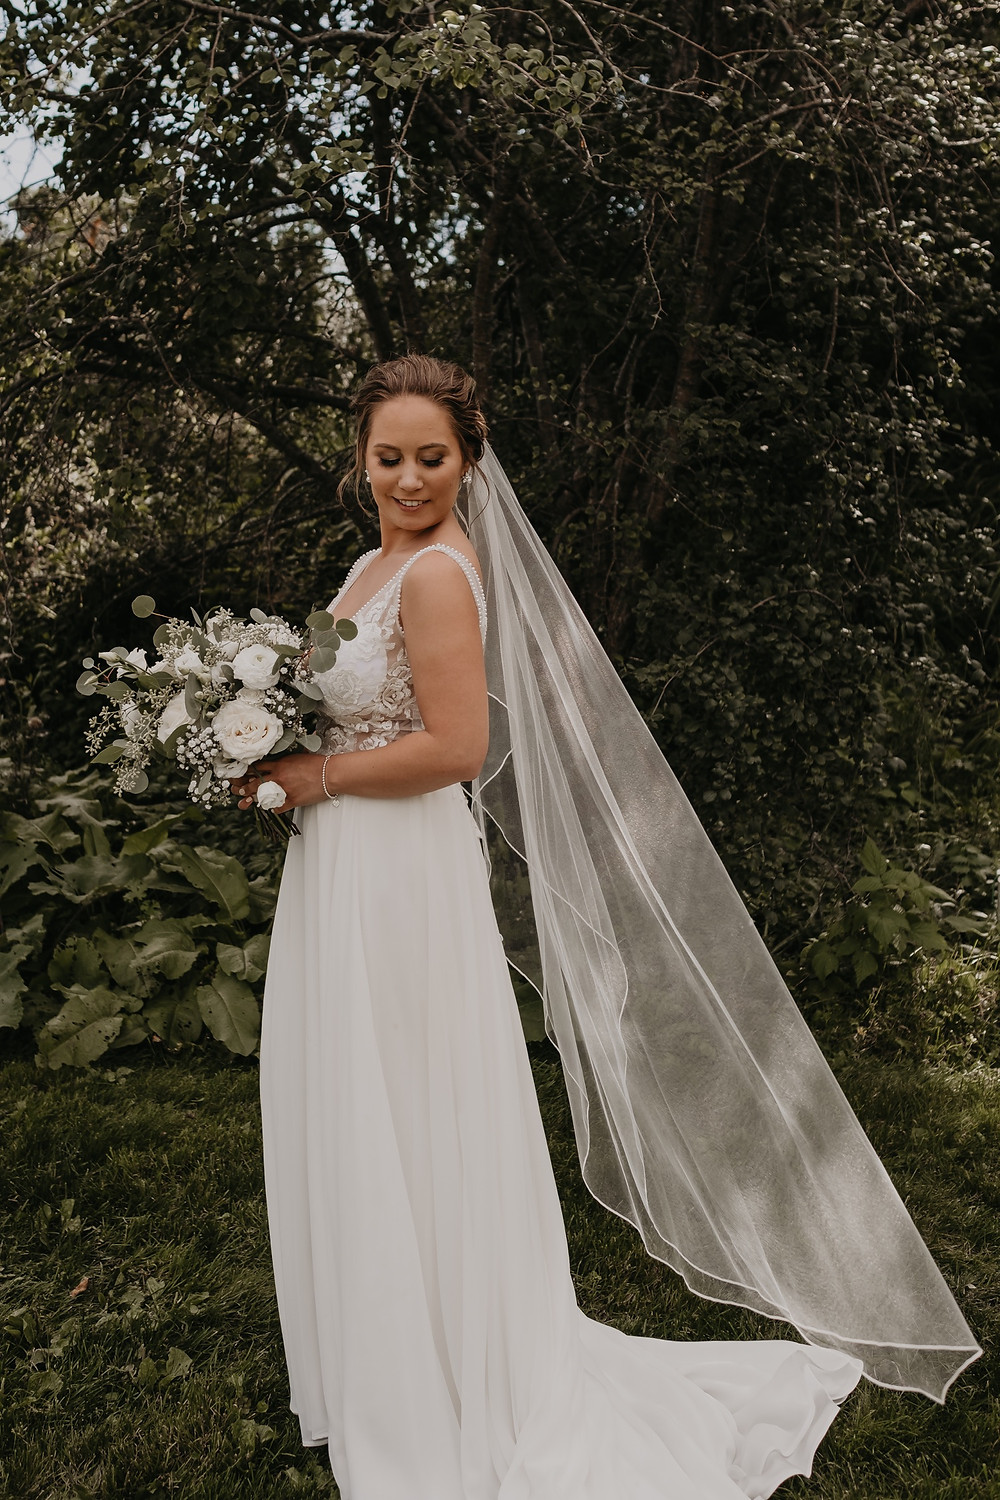 Bride with veil and floral bouquet. Photographed by Nicole Leanne Photography.